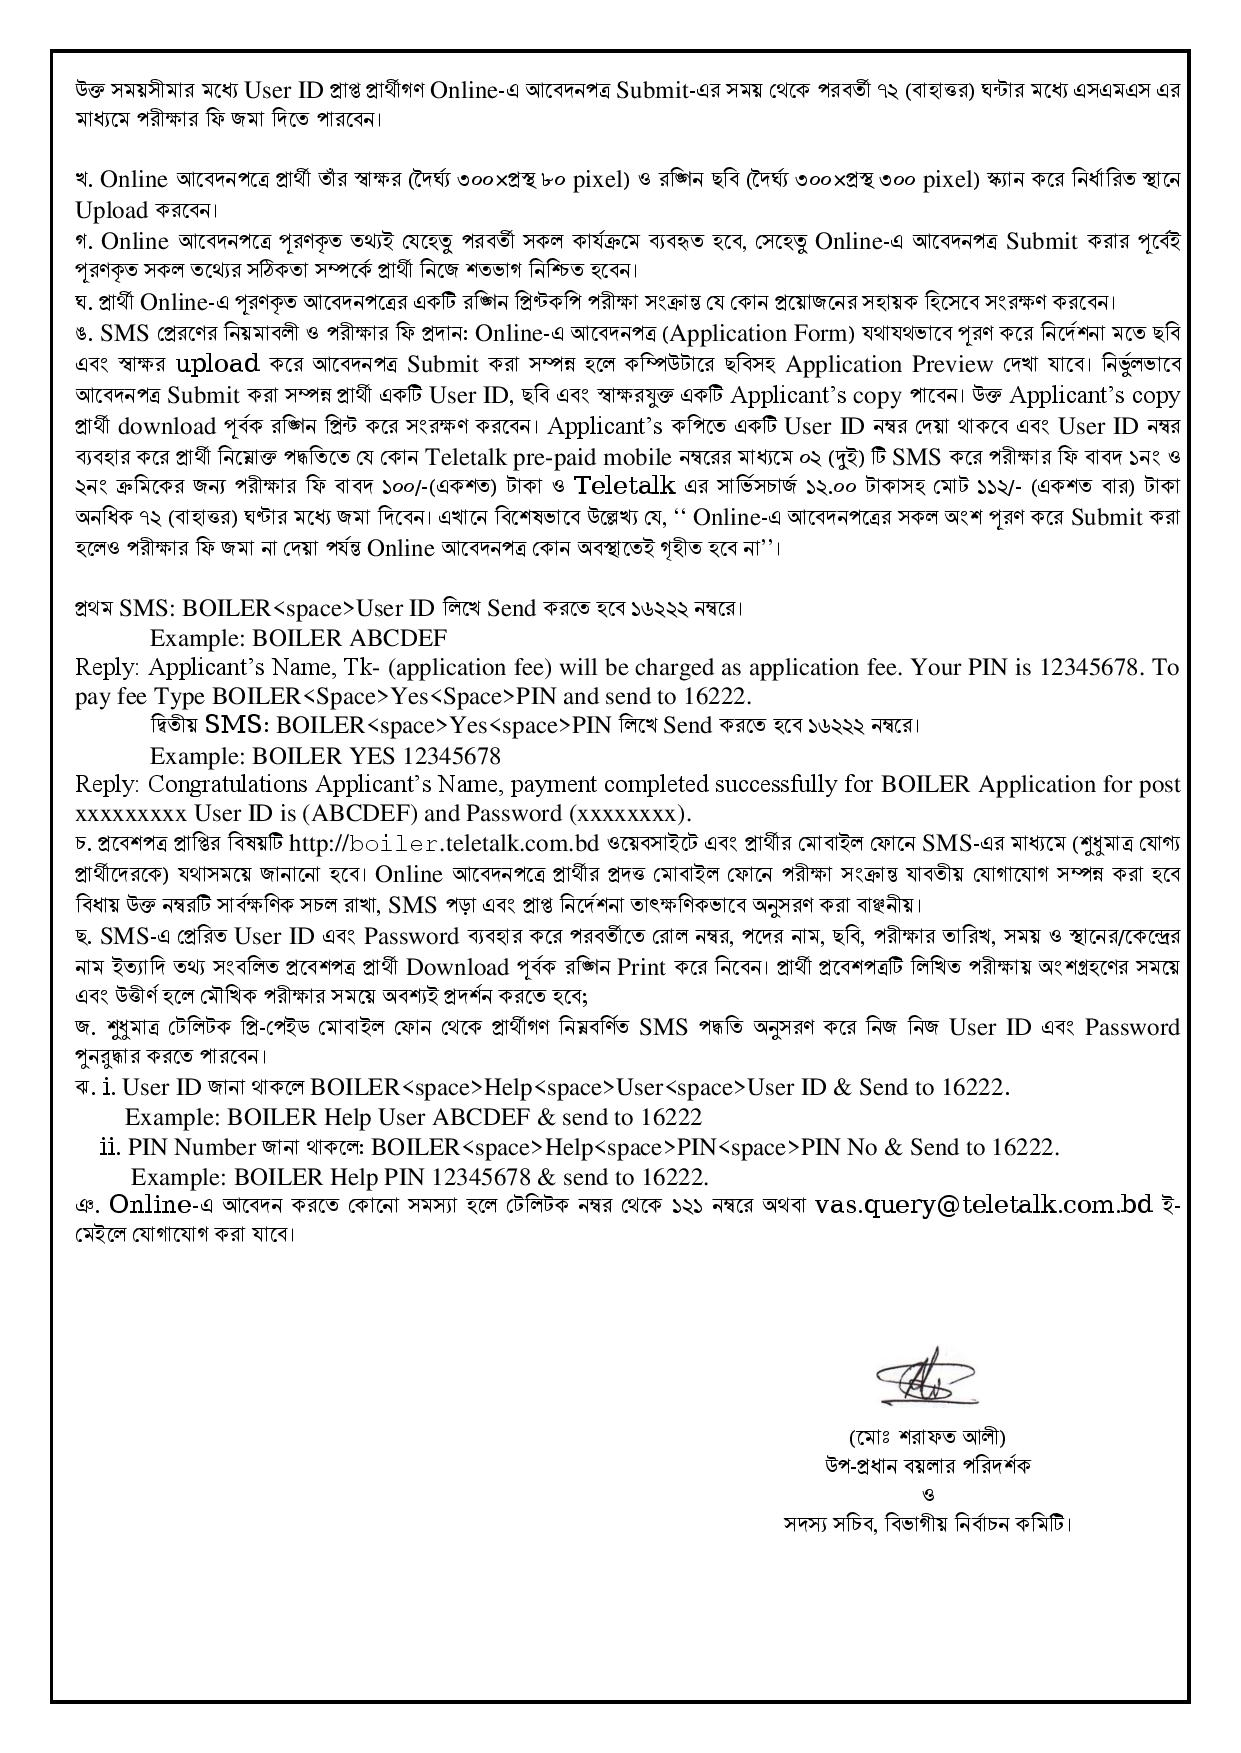 Chief Inspector of Boiler Office job circular 2020